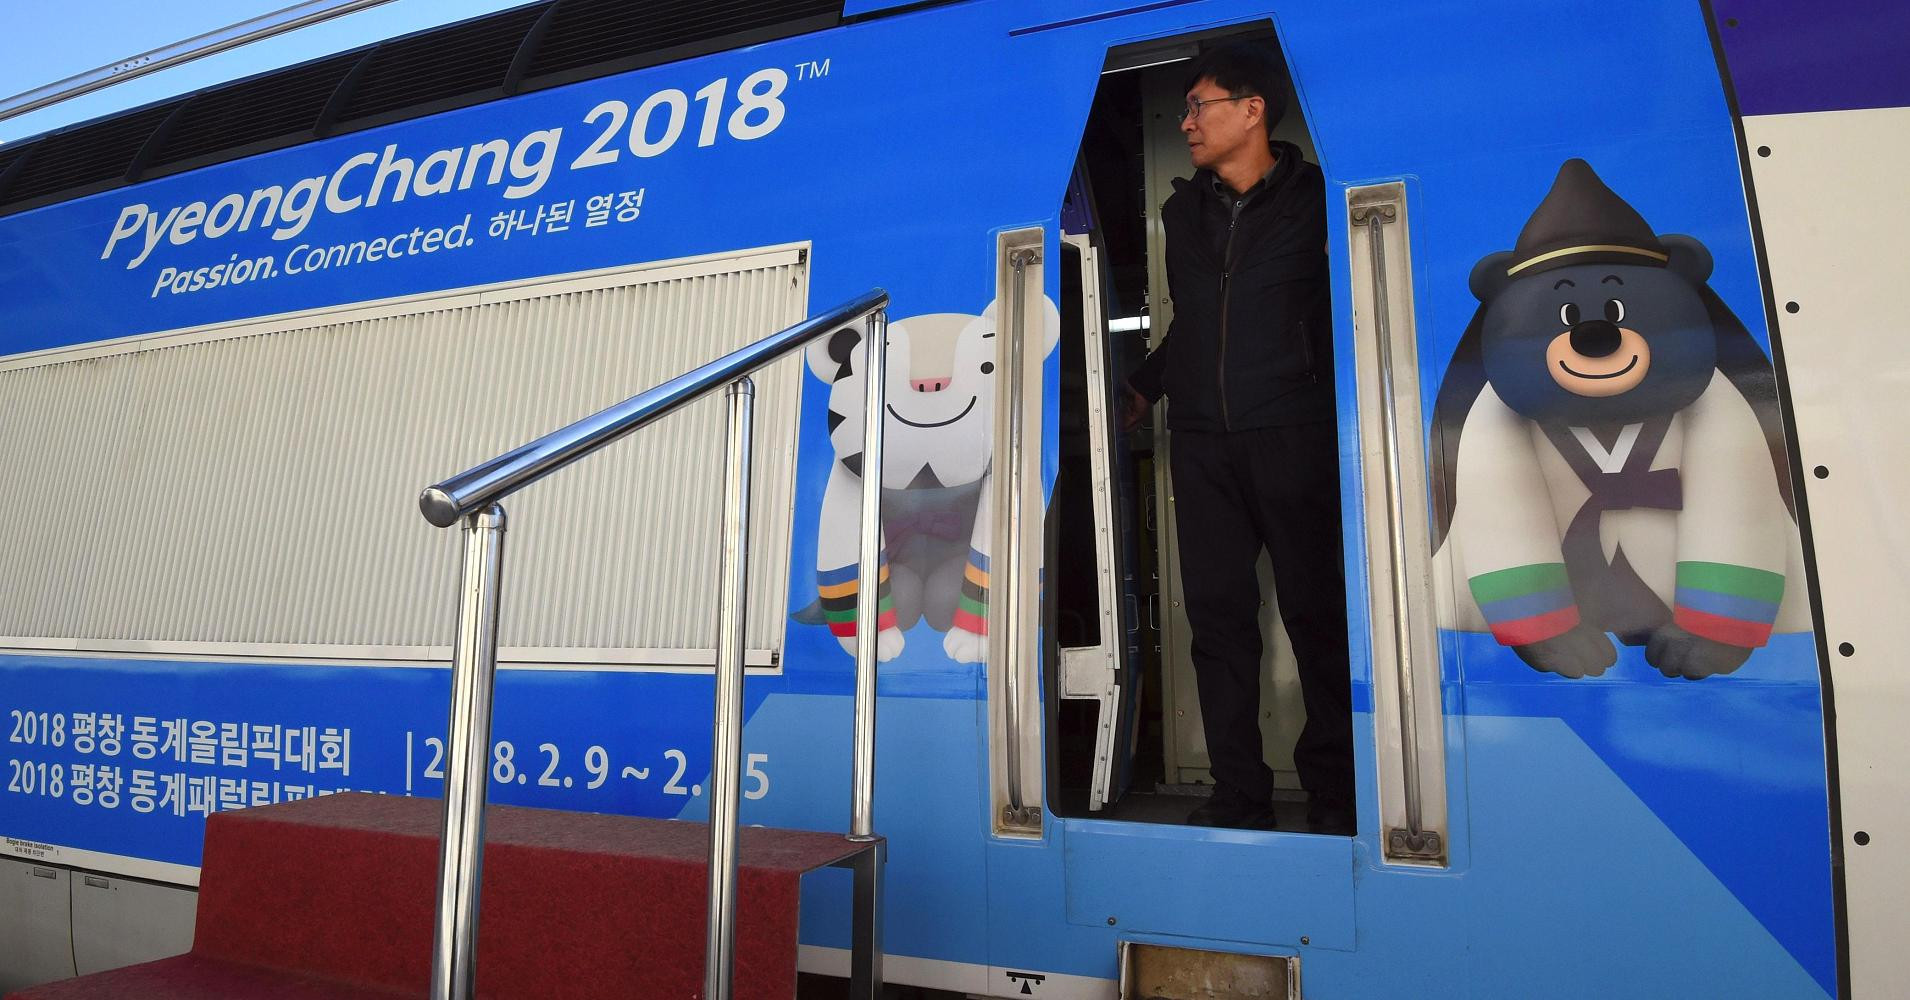 High-speed train for Pyeongchang 2018 set to make first public journey